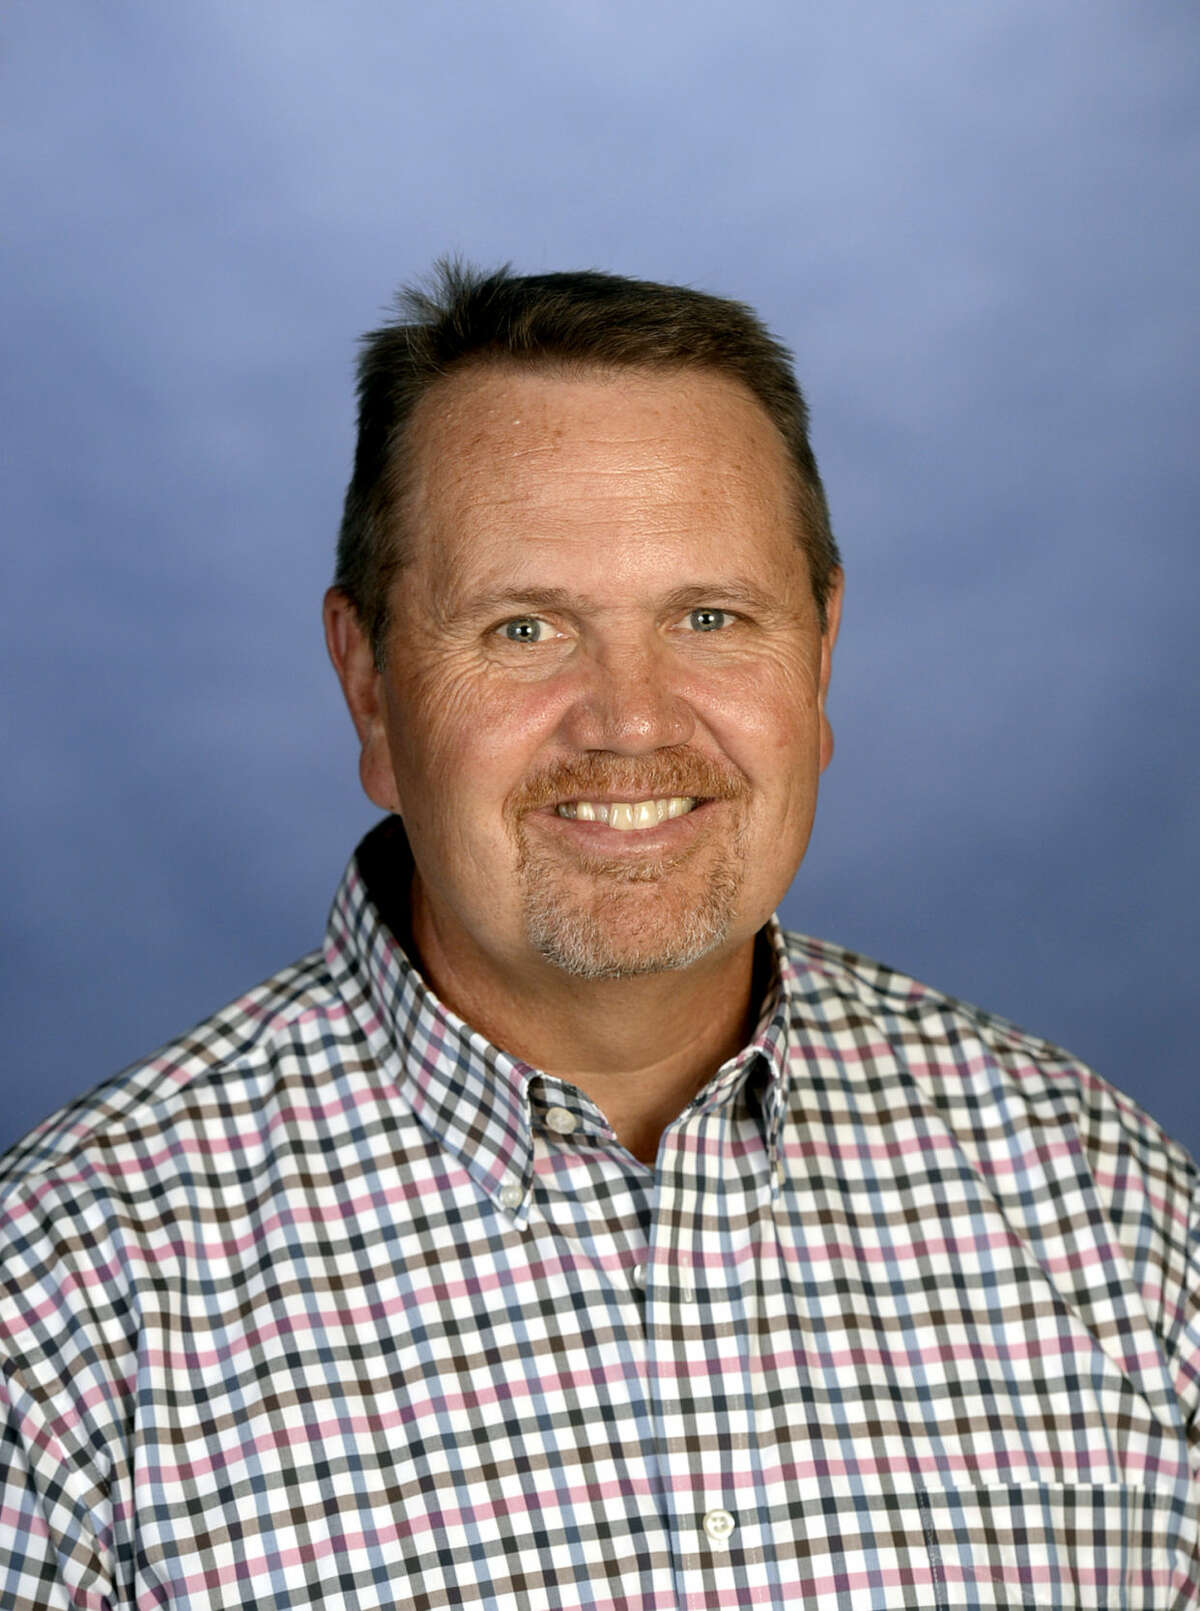 The board members in their Tuesday meeting, voted by a 6-1 margin, that Bryan Murry will replace Rick Davis after Davis served in that position for six years.